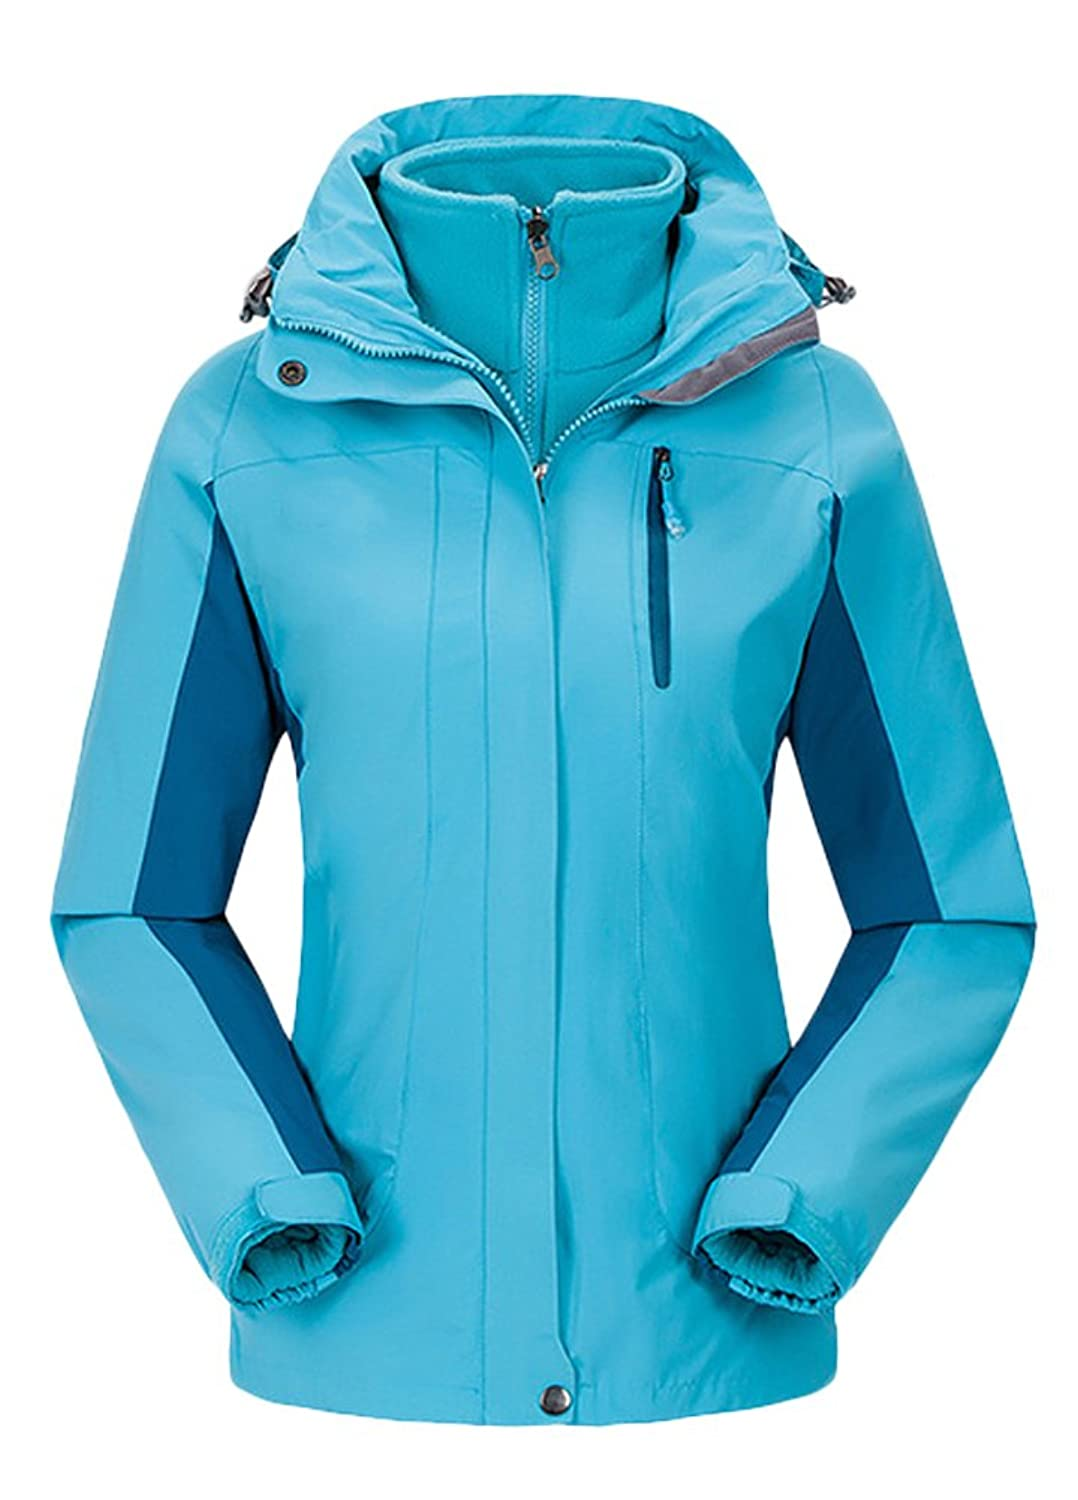 Minibee Women's Windproof/Waterproof Outdoor Sportswear Jacket